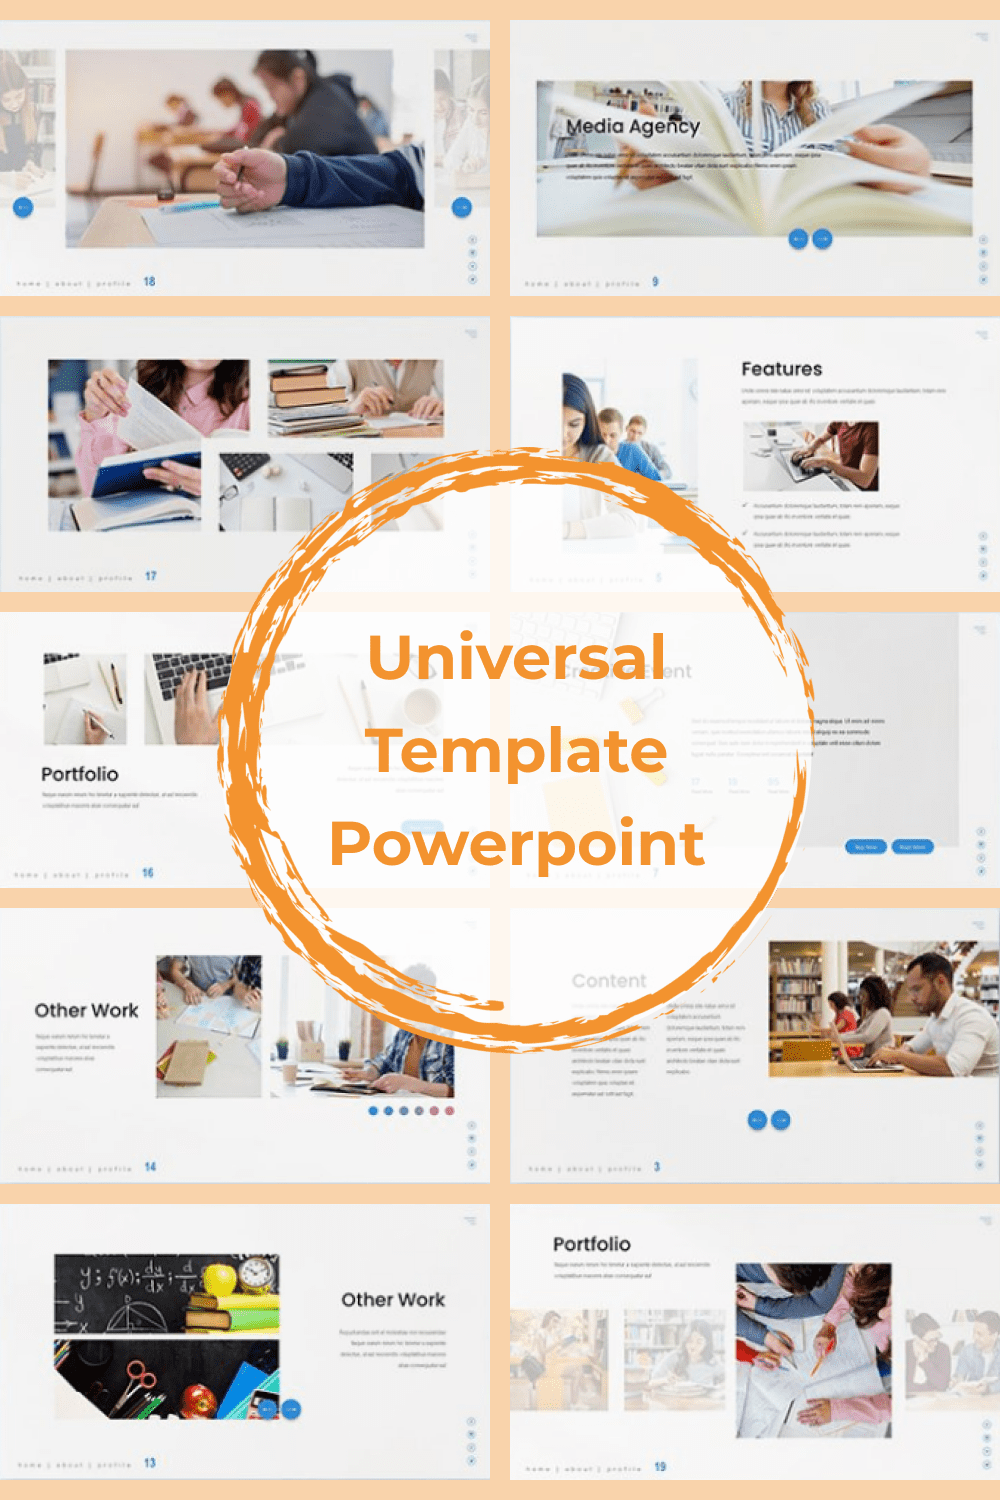 Simple and comfort template for education presentation.